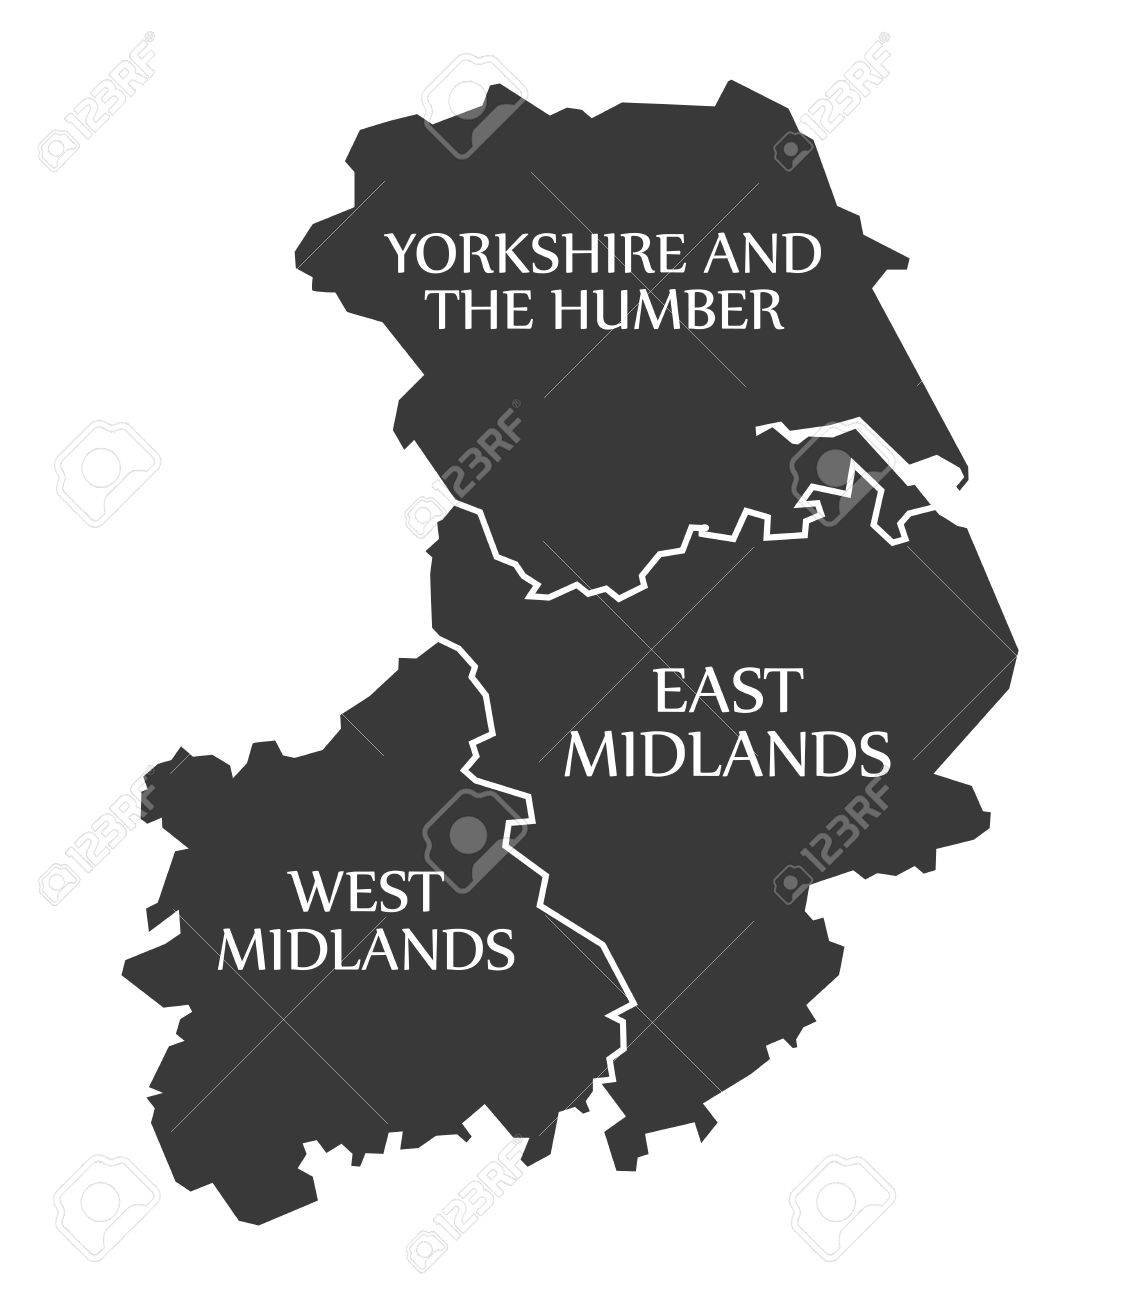 vector yorkshire and the humber east midlands west midlands map uk illustration